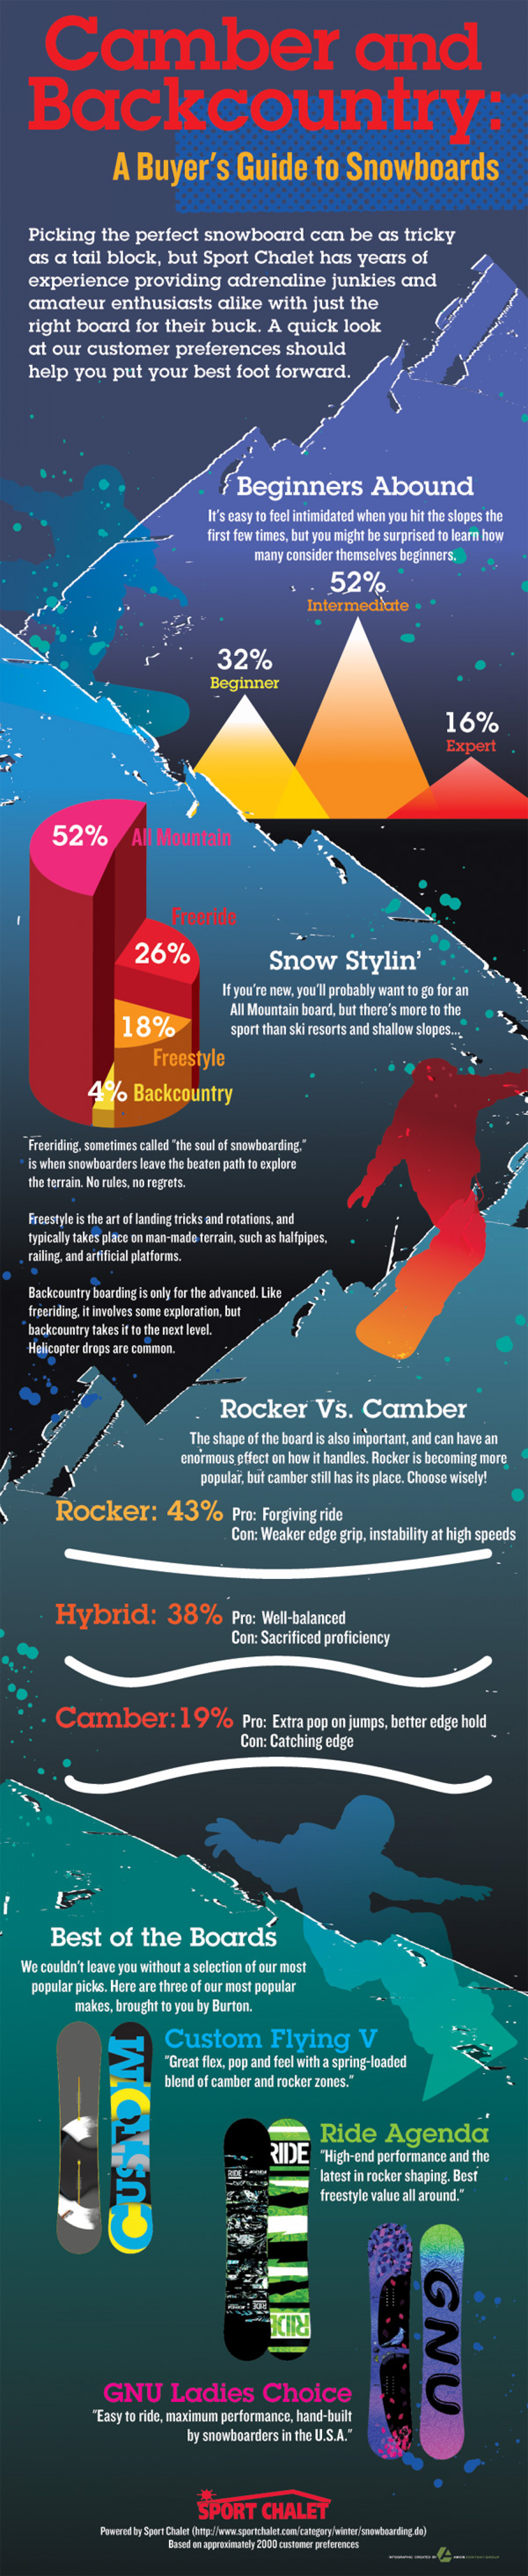 camber & Backcountry: A buyer